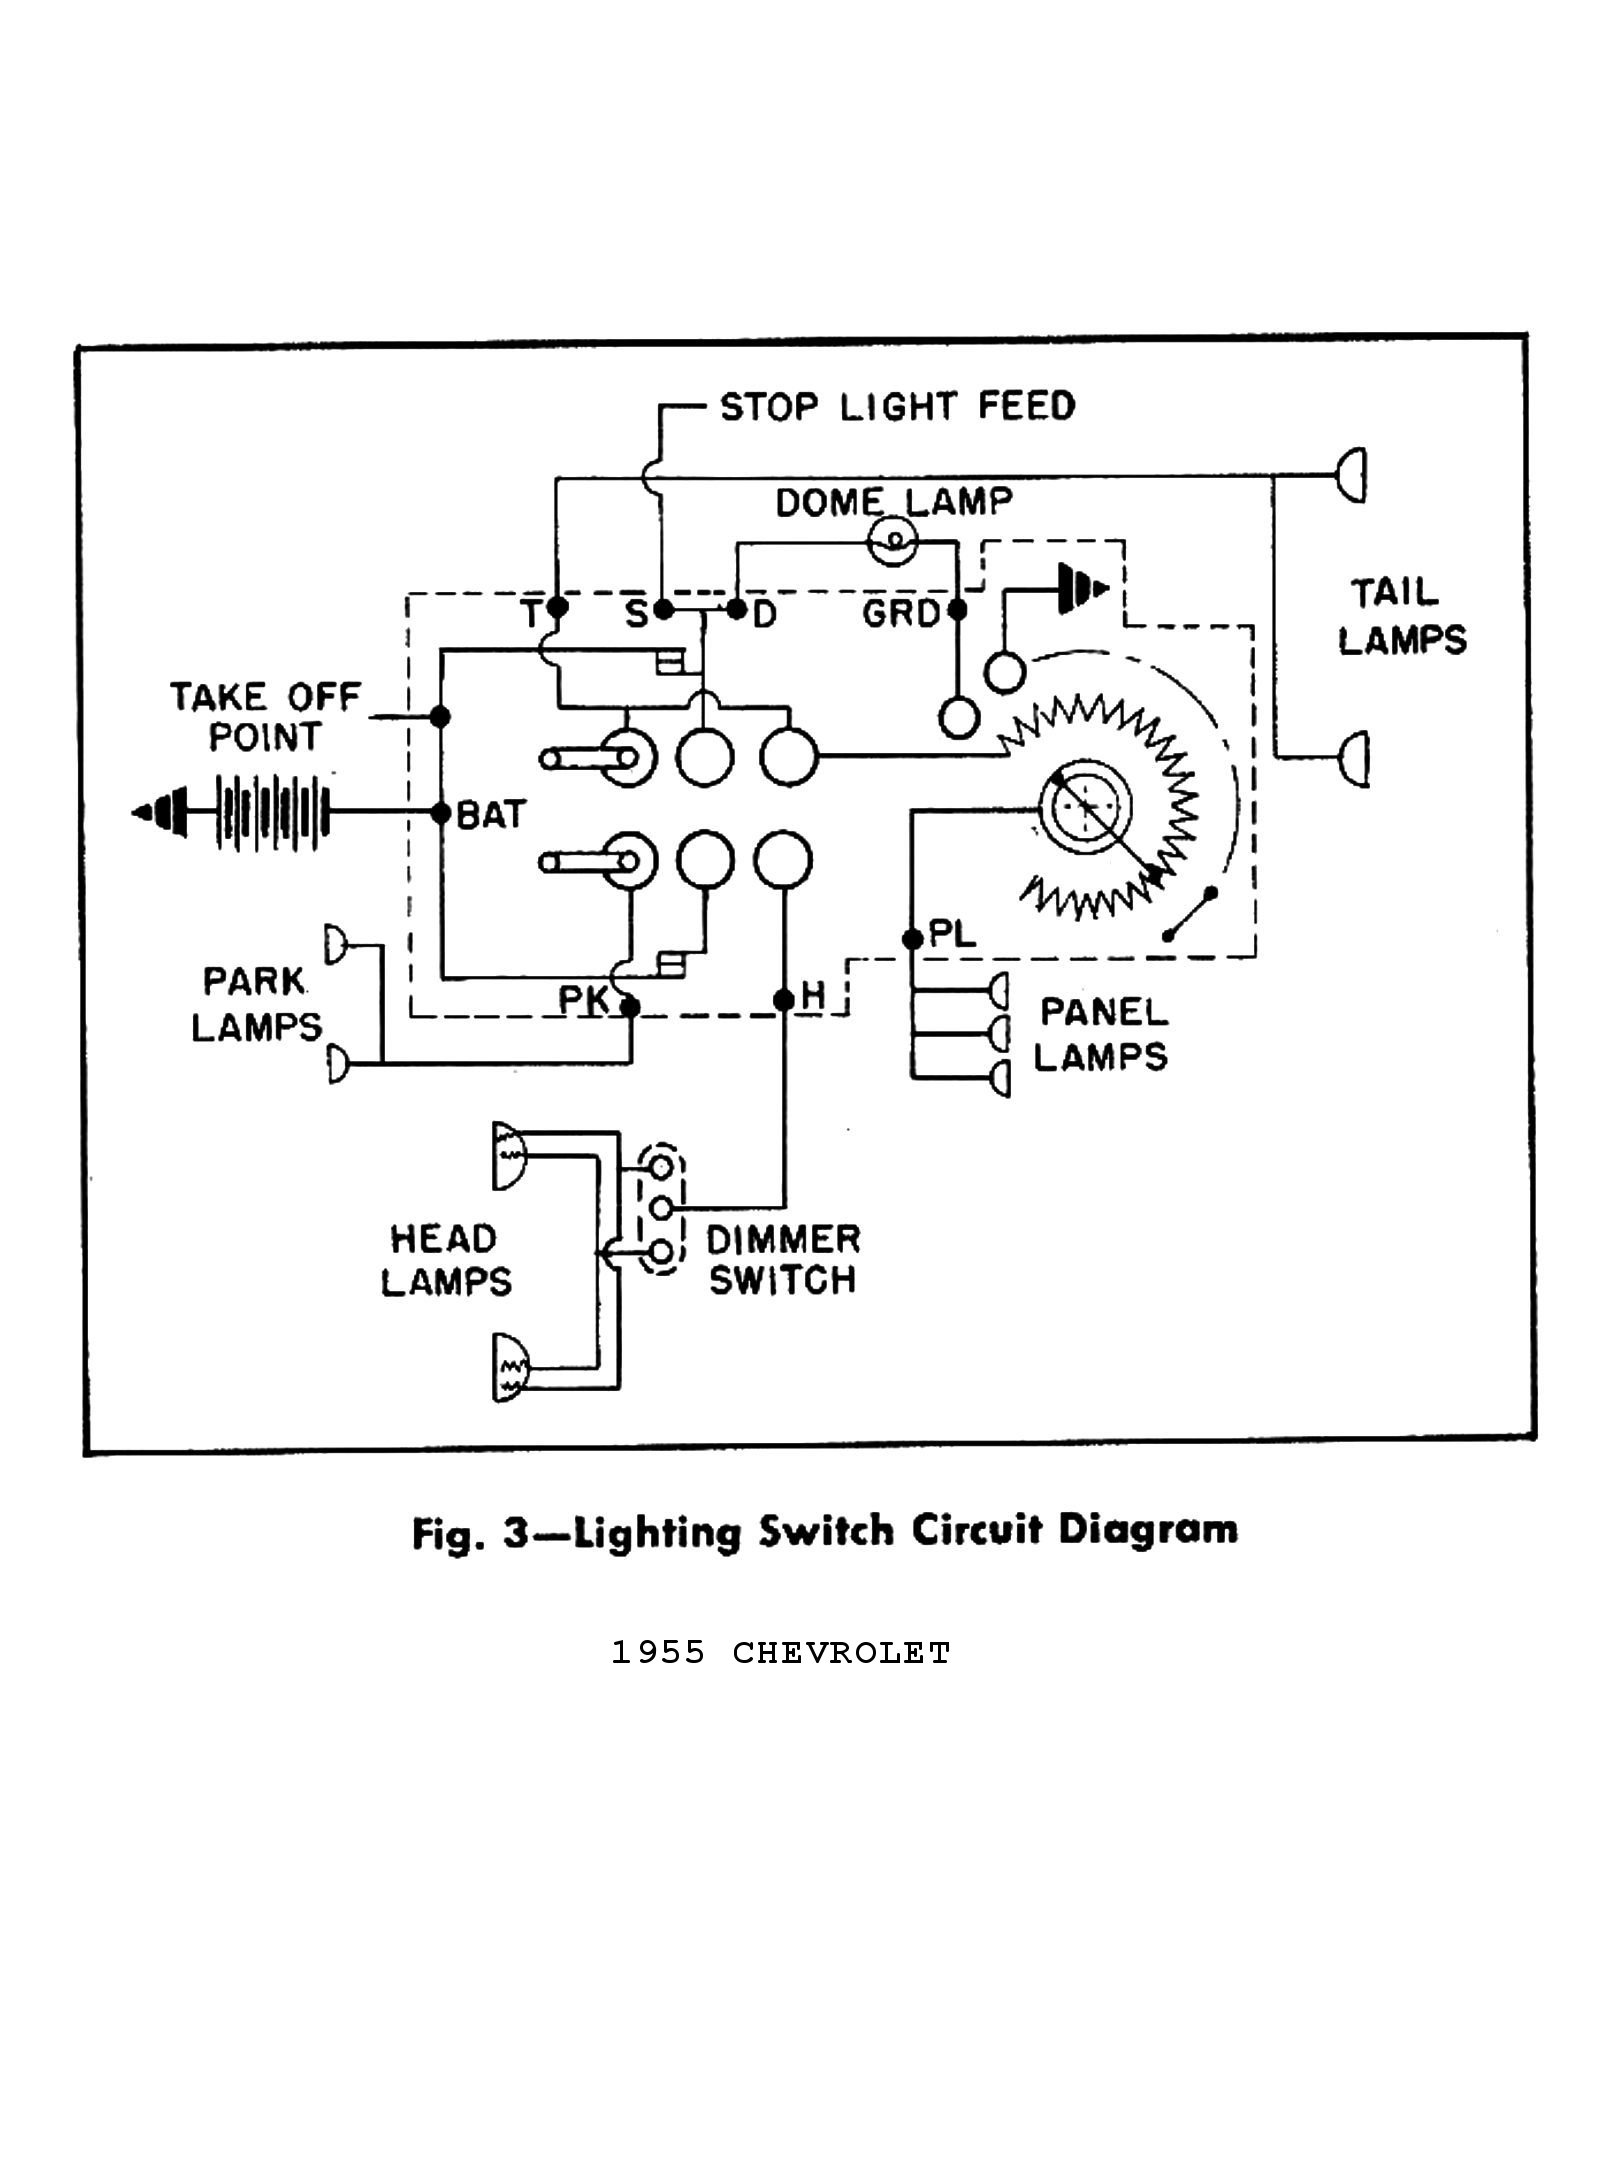 hight resolution of 1978 gmc truck fuse diagram wiring library1978 gmc truck fuse diagram